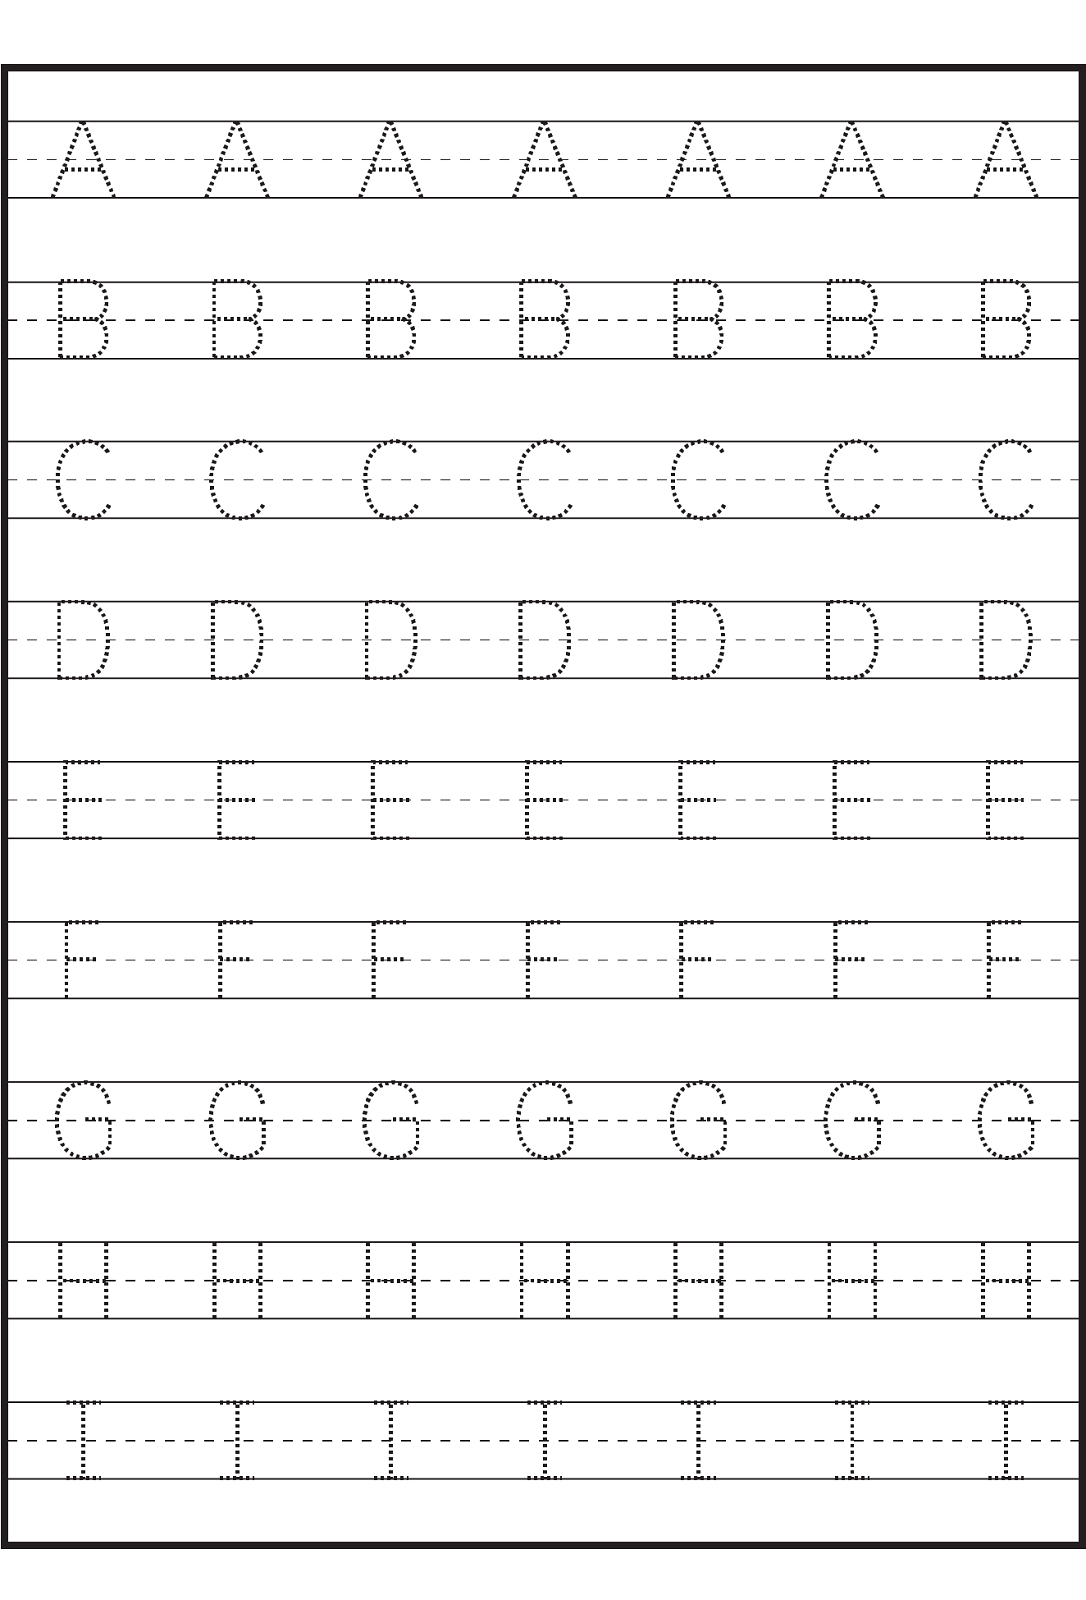 This is a graphic of Impertinent Printable Letter Worksheet